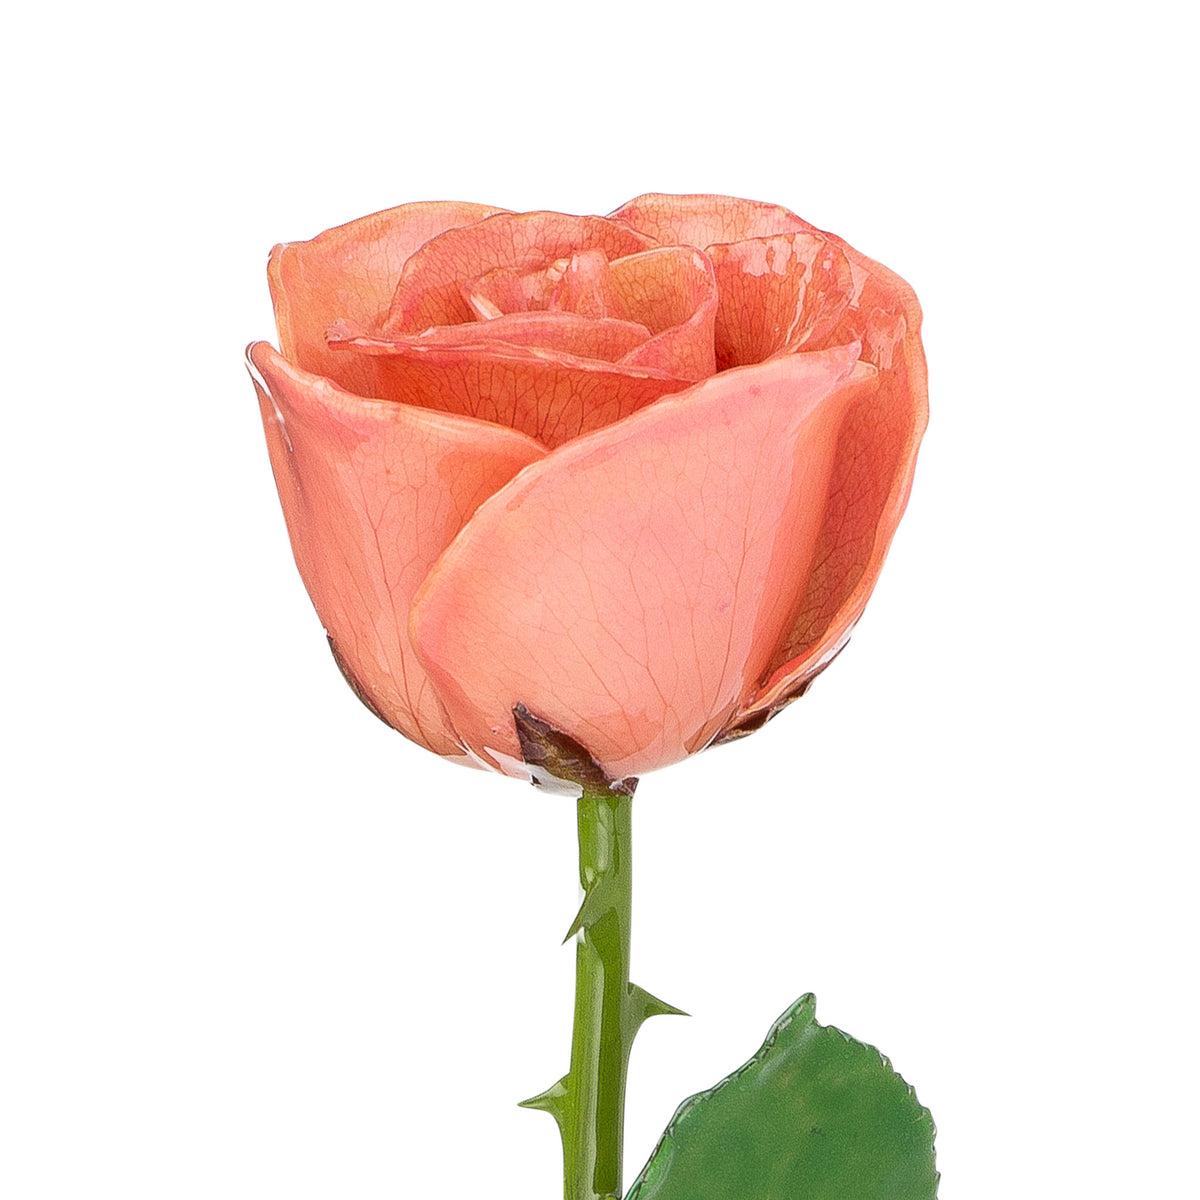 Natural (Green Stem) Forever Rose with Pink Colored Petals. View of Stem, Leaves, and Rose Petals. This a Forever Rose without any gold or other precious metals on it.